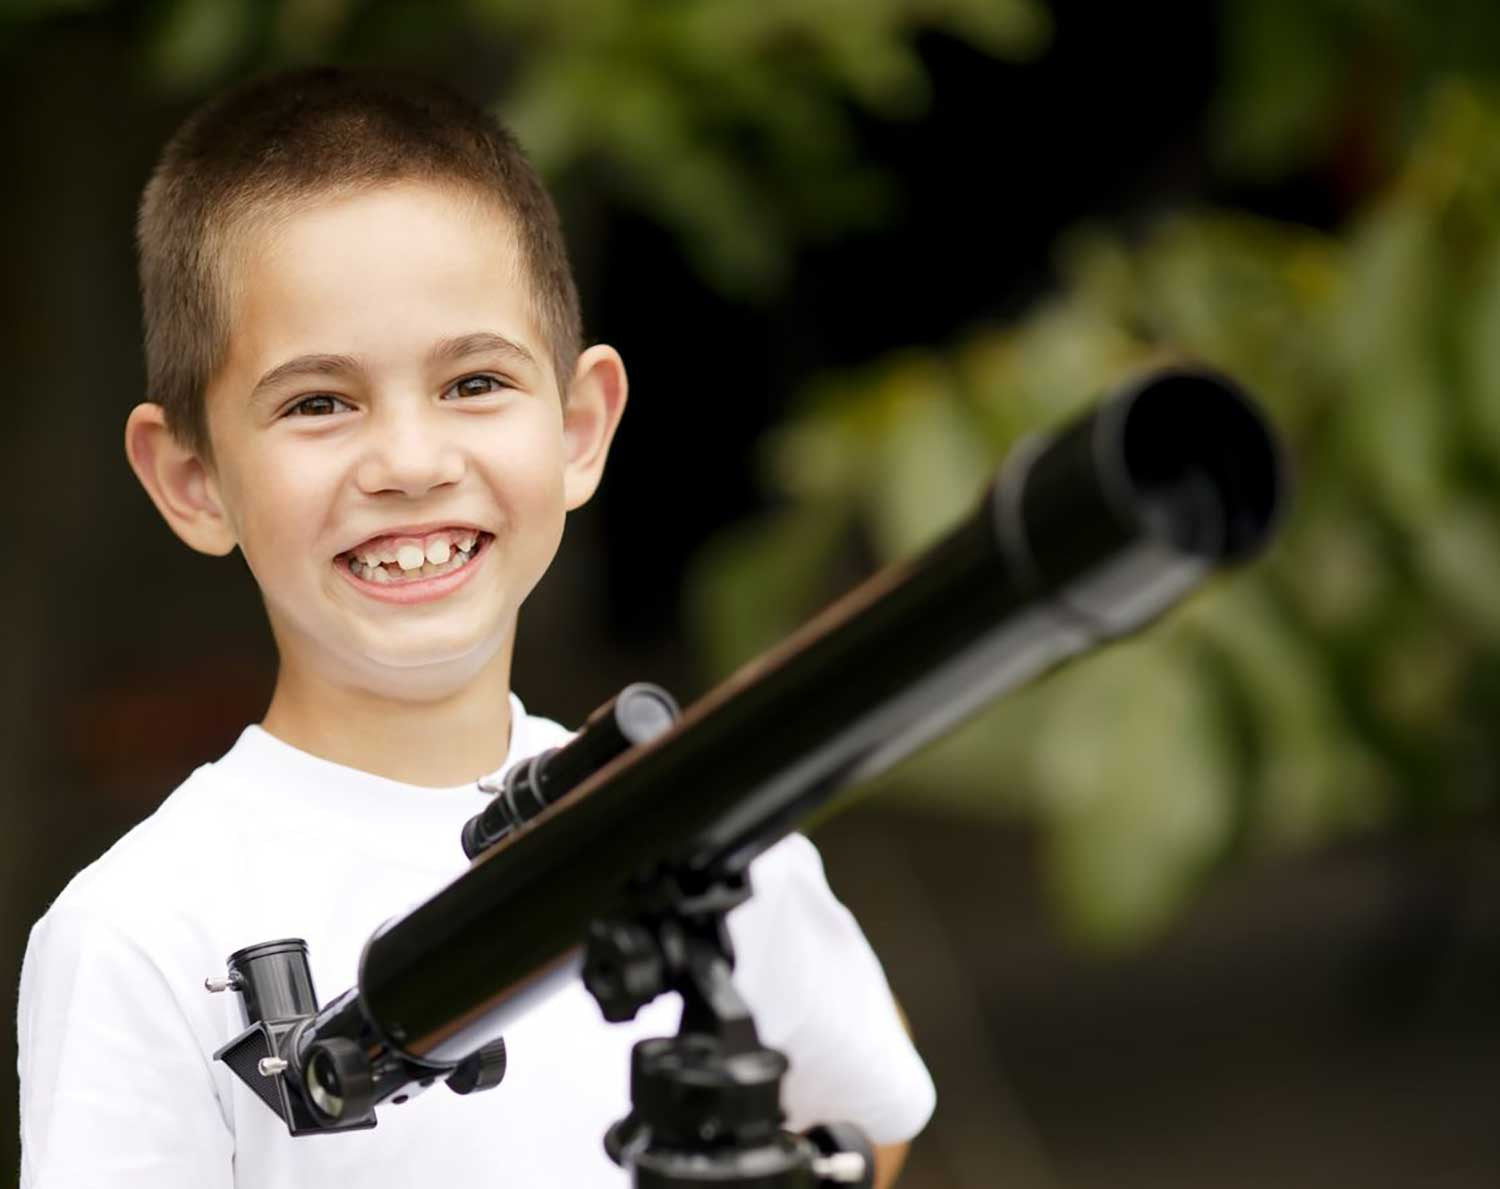 Child using telescope